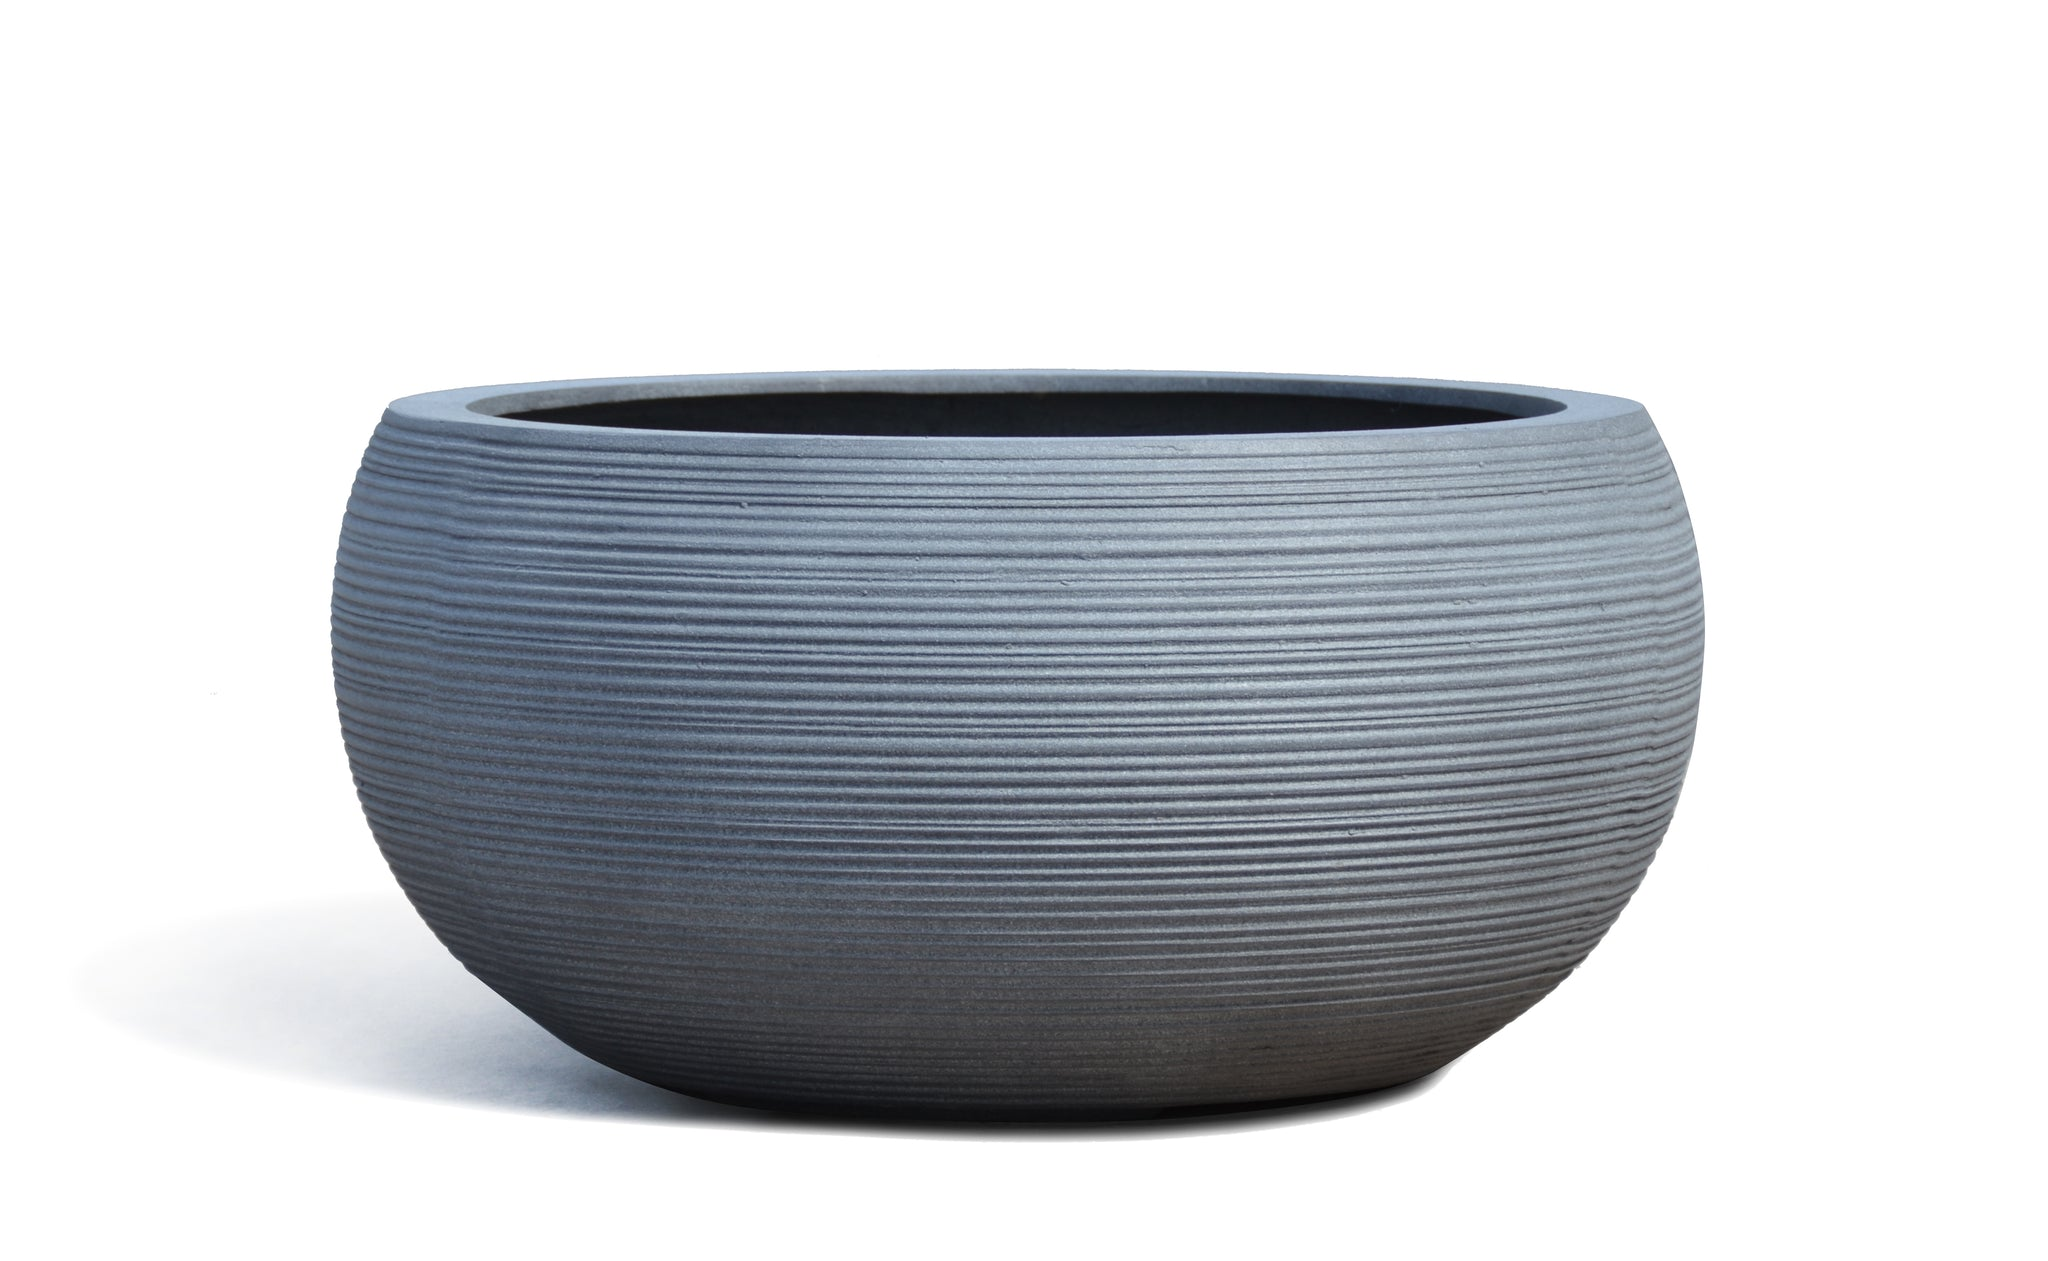 grey low bowl planter